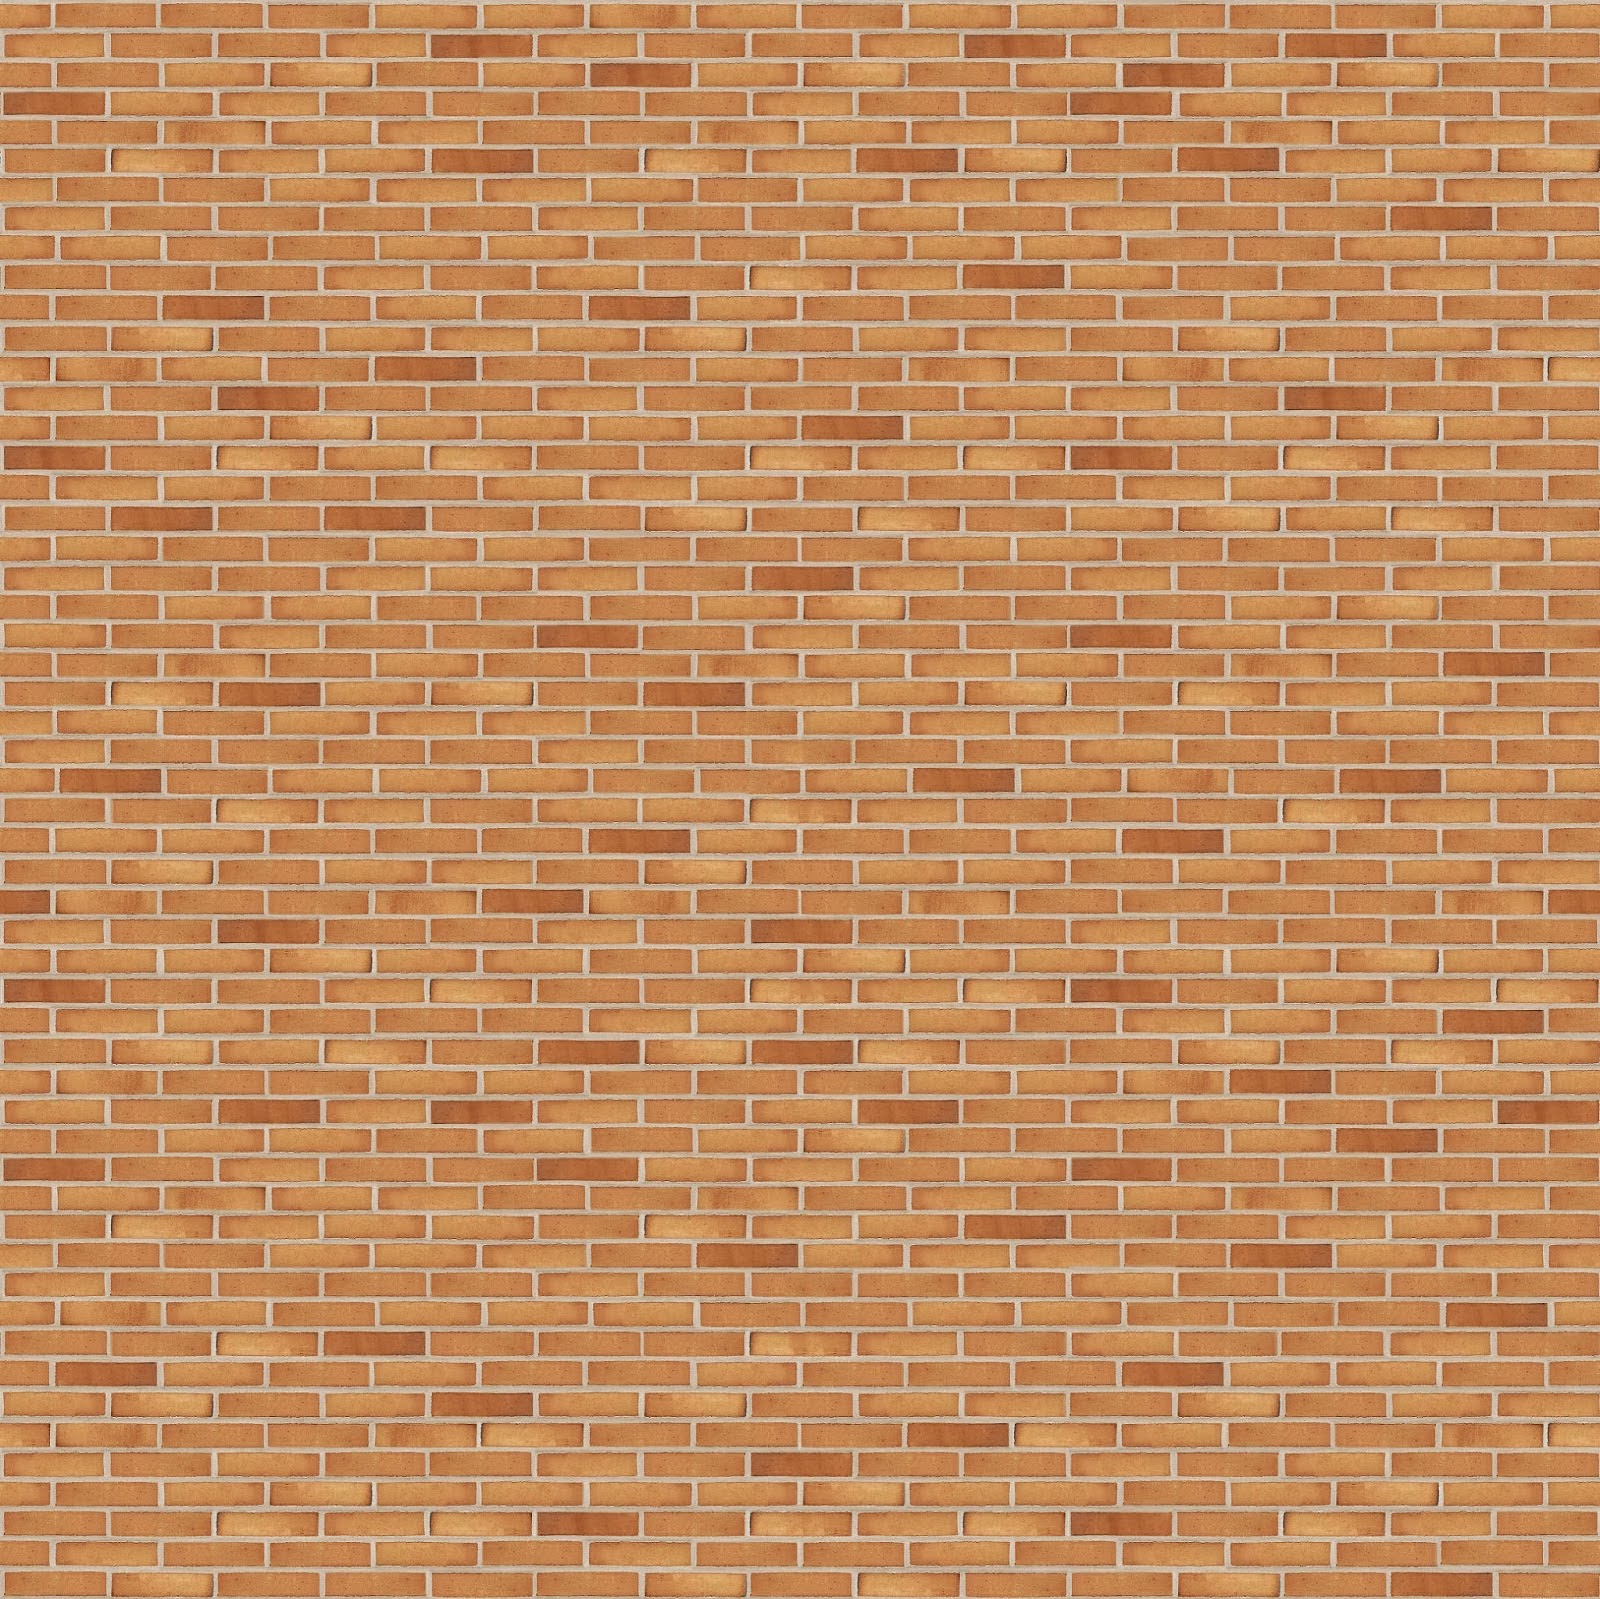 Carter Yeung And Yung Yeung House as well Texture Seamless Brick 1861 together with Main Gate Entrance Design Ideas And Us House Picture furthermore Keltron  pudata blogspot moreover Moriyama House. on simple house